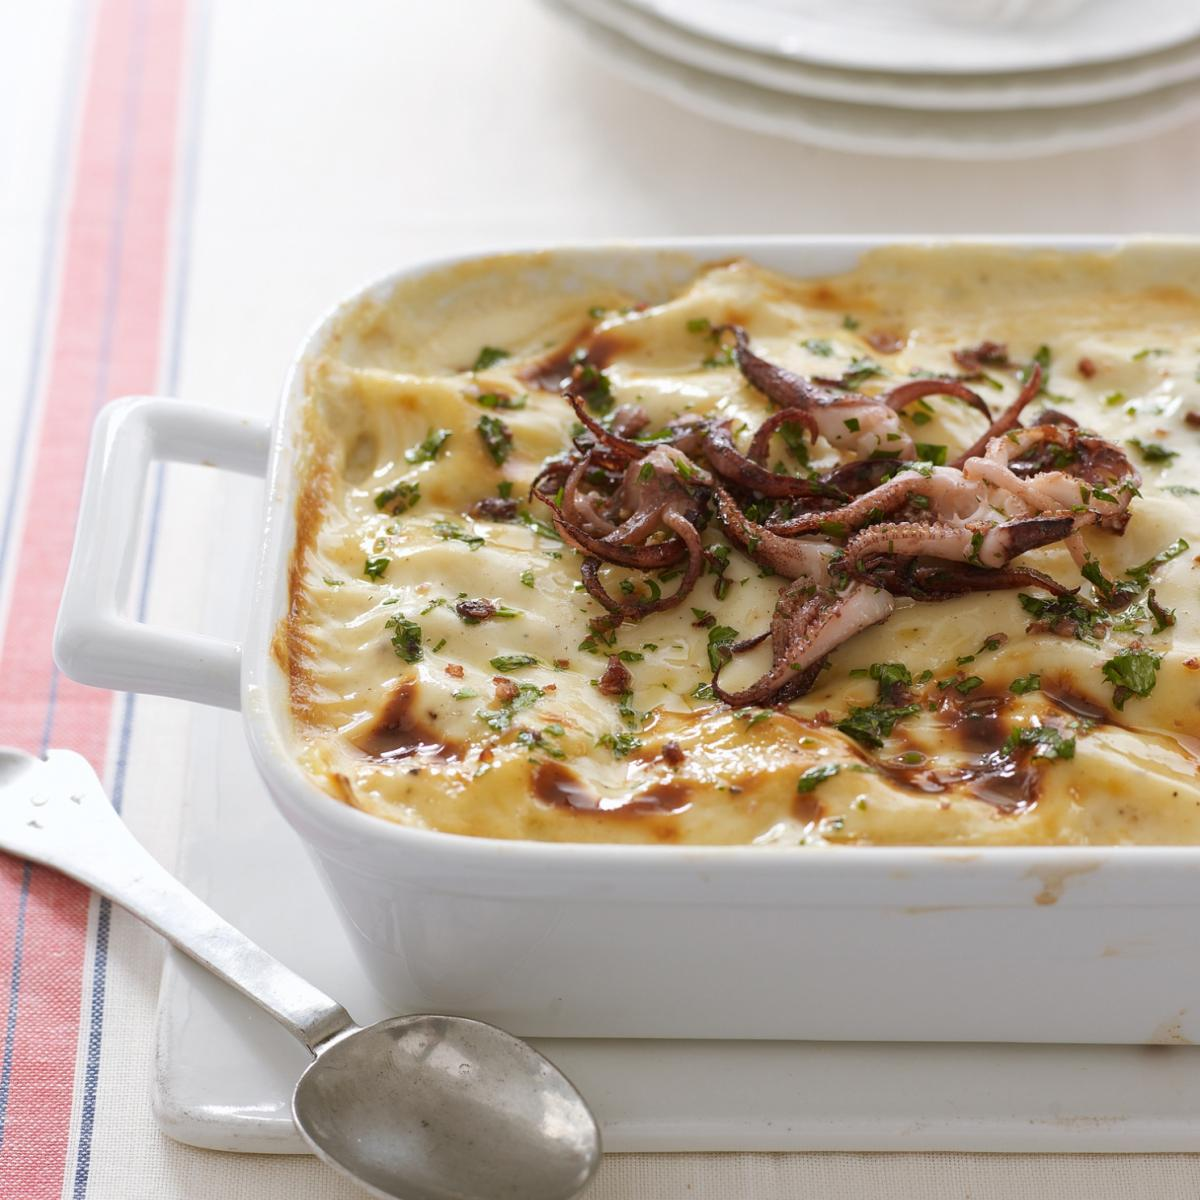 A picture of Delia's Seafood Lasagne recipe